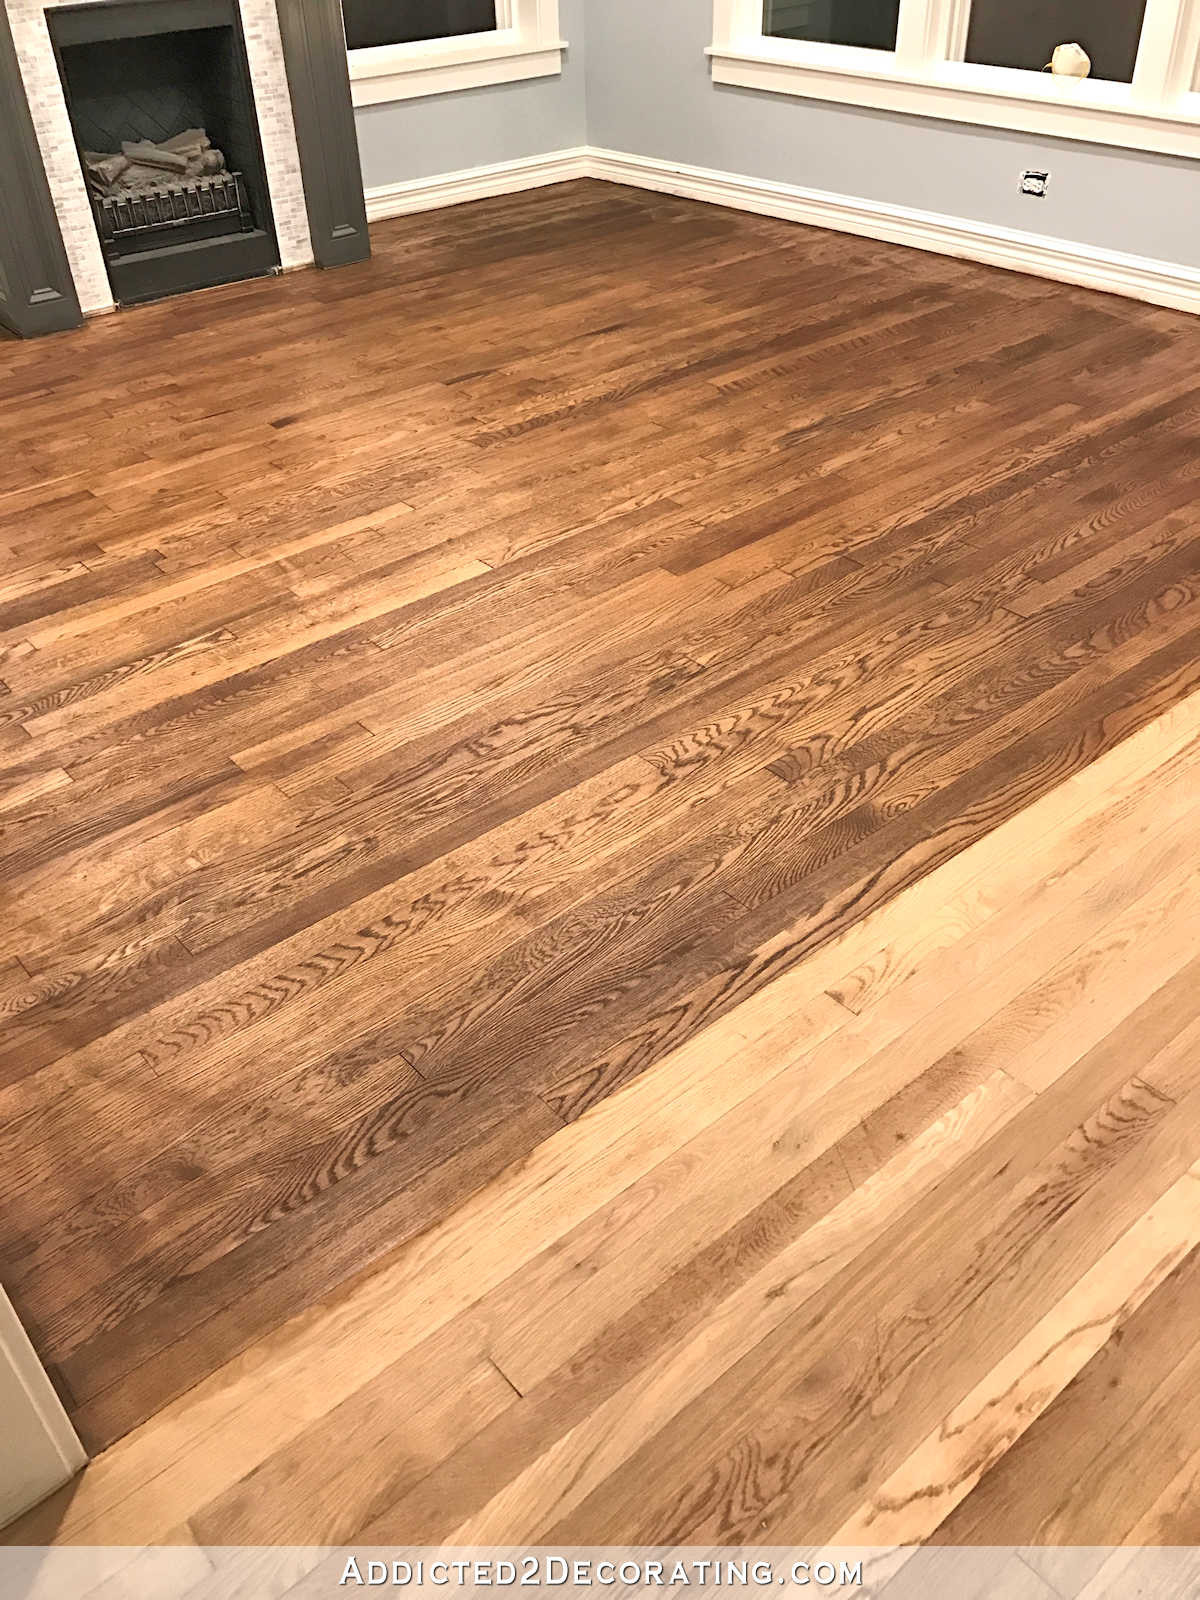 can you stain hardwood floors any color of adventures in staining my red oak hardwood floors products process in staining red oak hardwood floors 7 stain on the living room floor